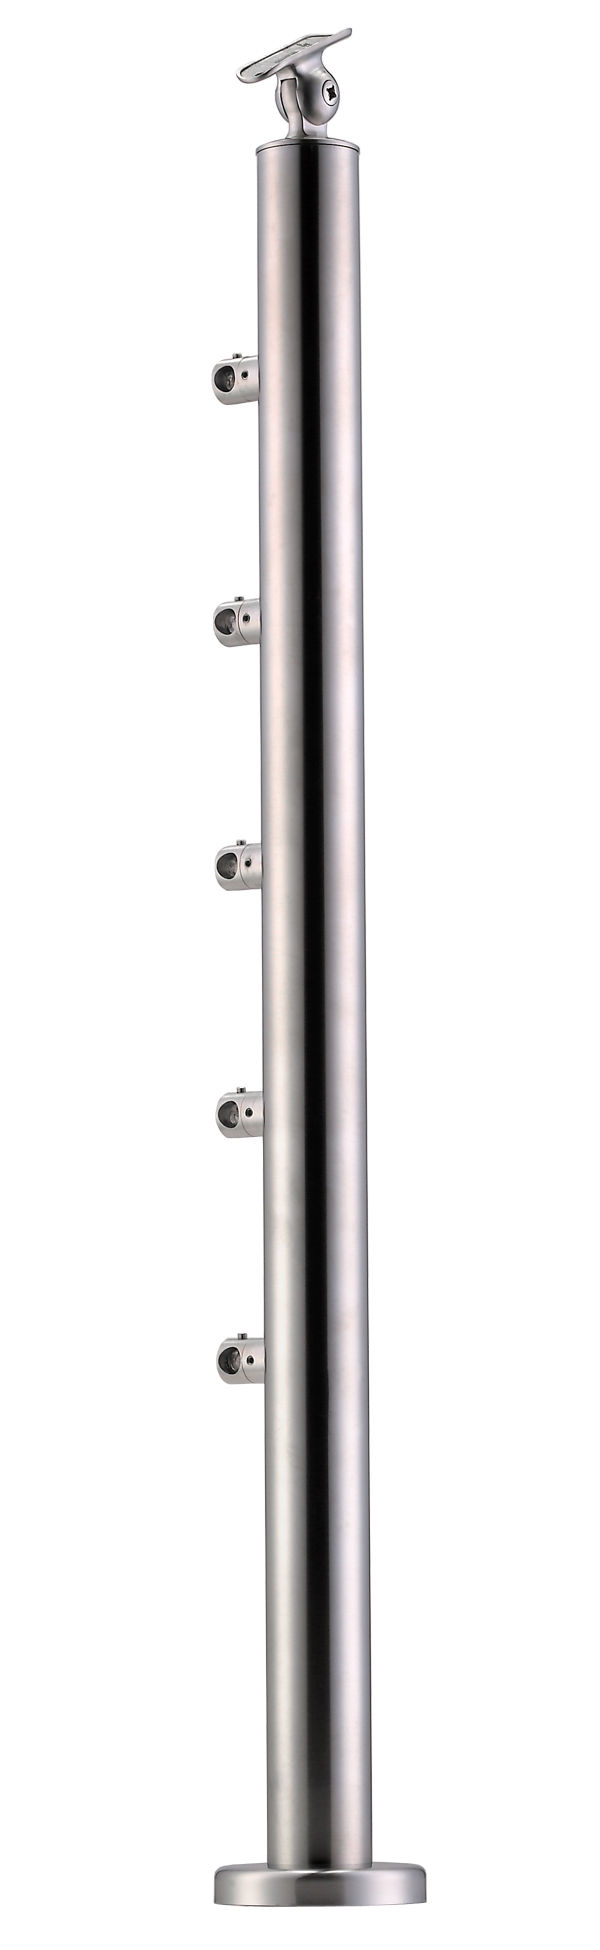 Stainless Steel Balustrade Posts - Tubular - SS:2020557A